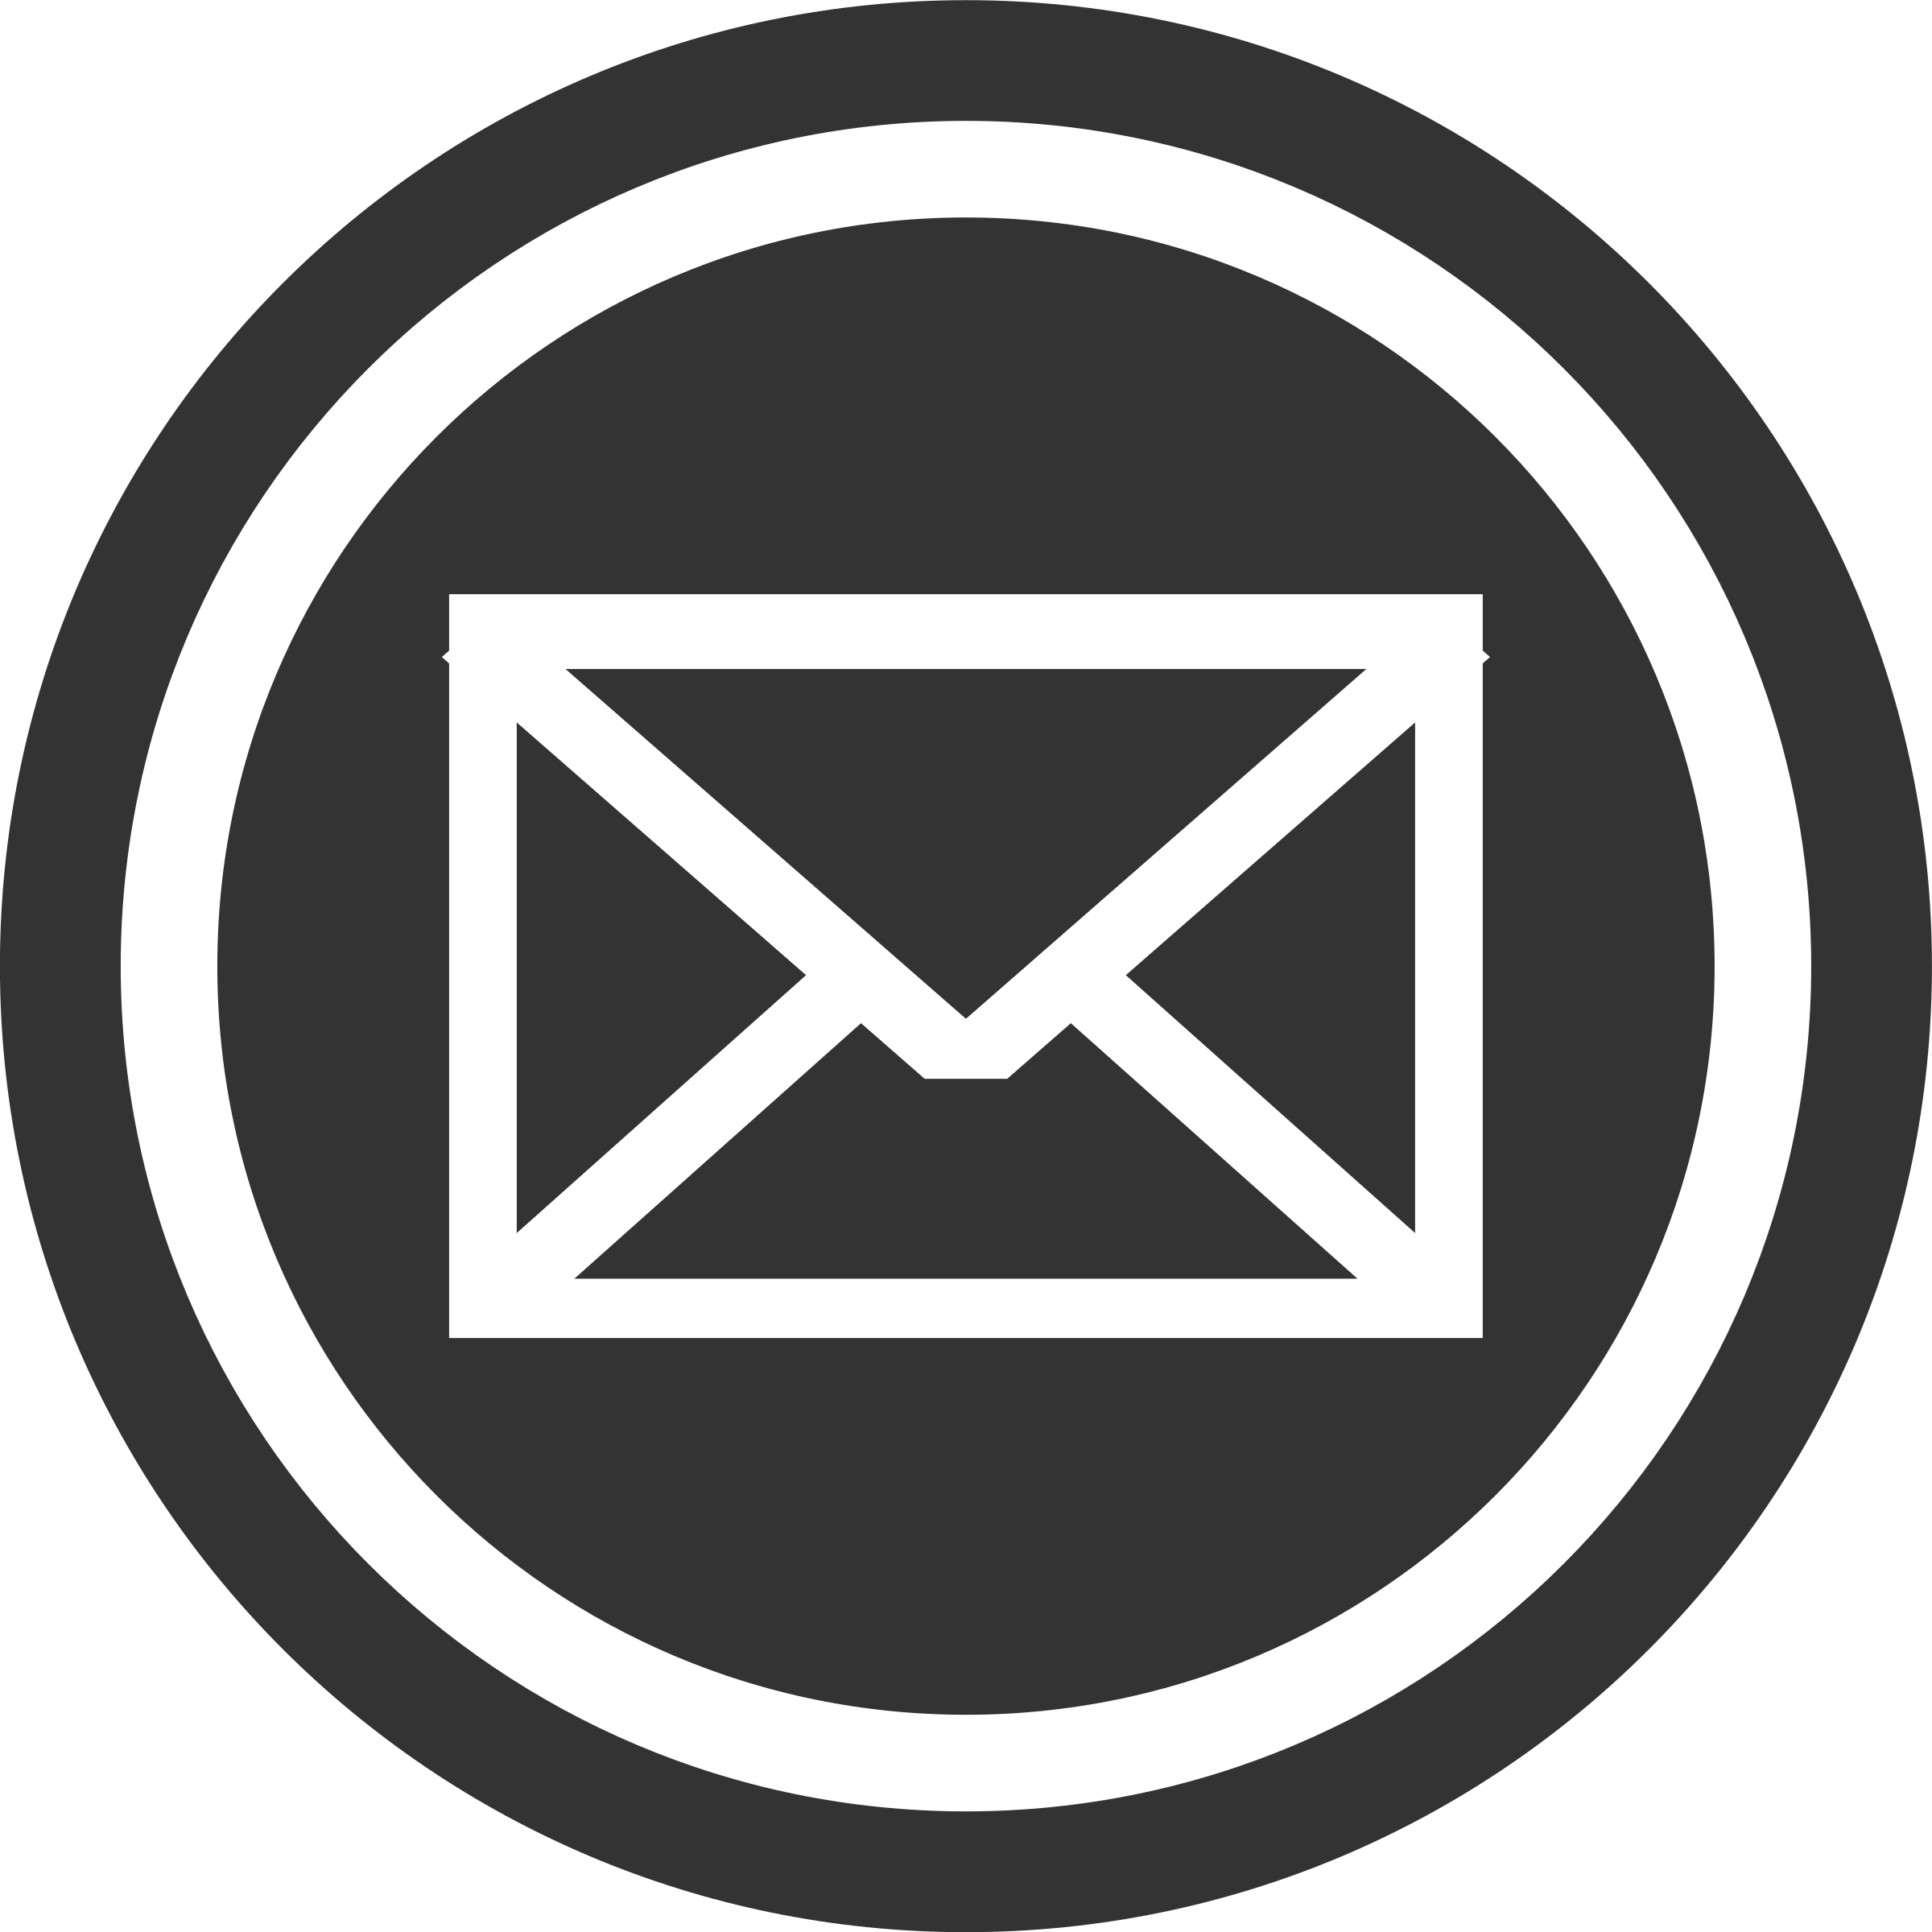 email symbol clipart